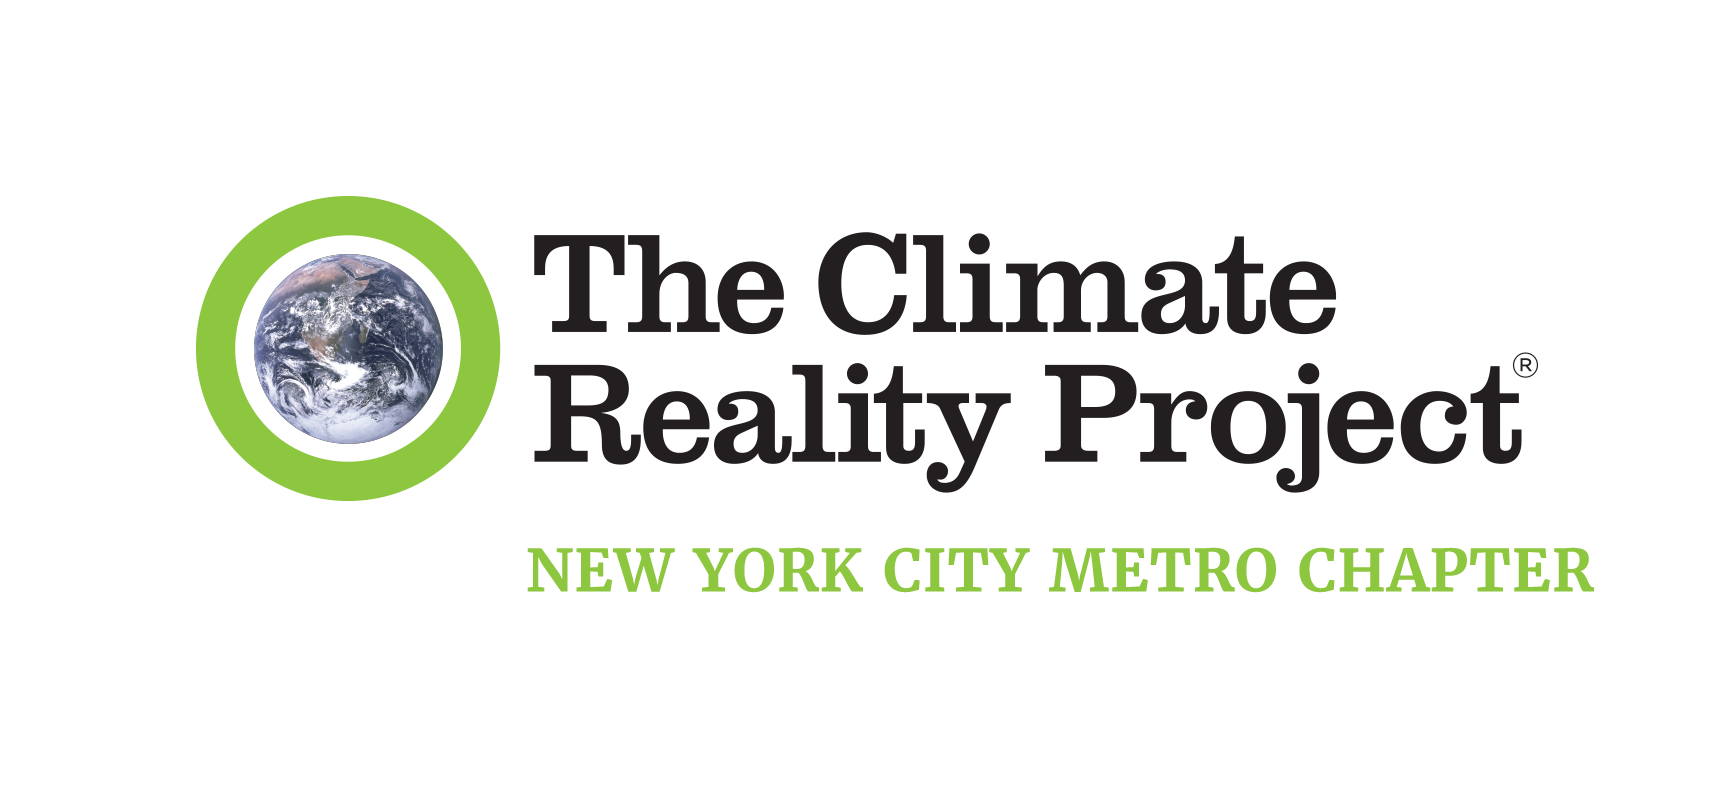 About - We are the local New York City Chapter of The Climate Reality Project.